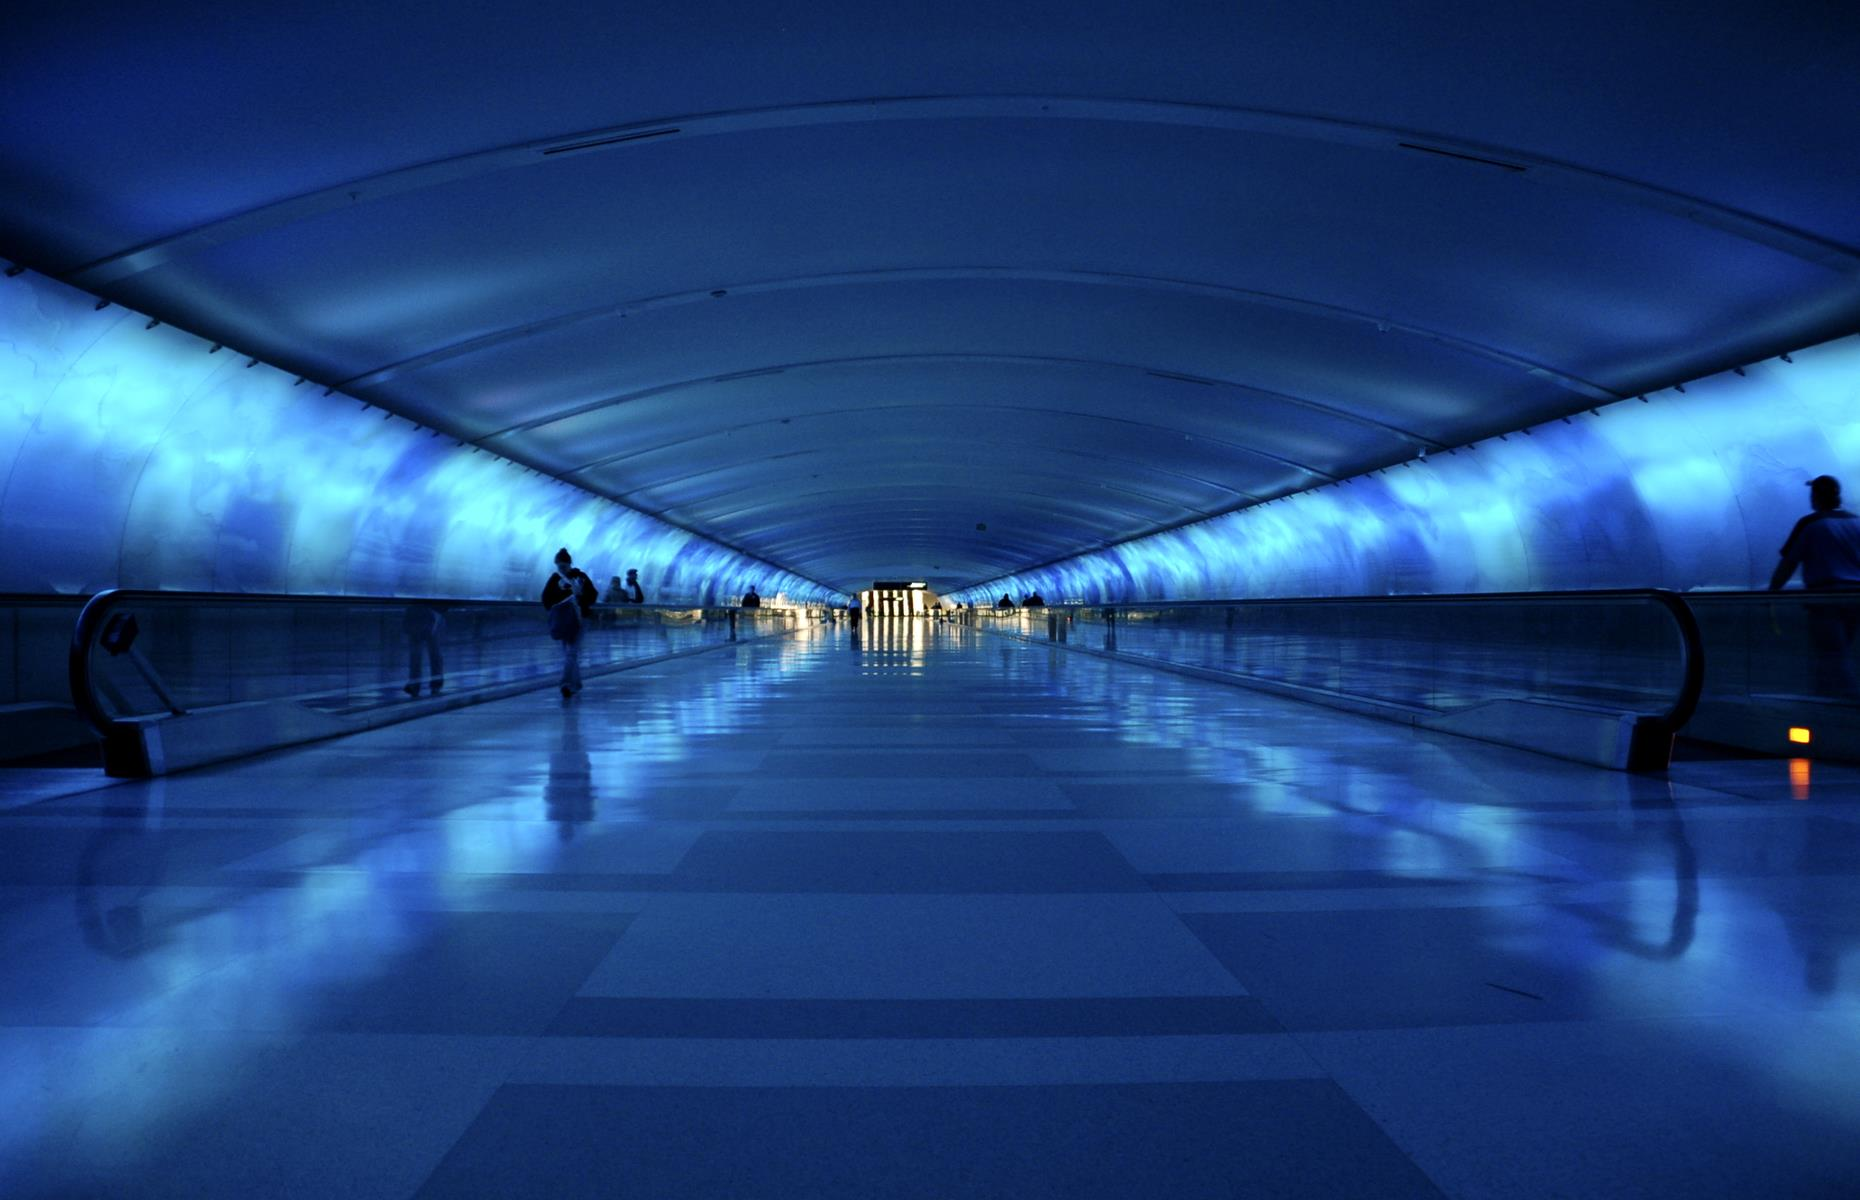 Slide 23 of 31: Who says airport infrastructure needs to be boring? Detroit Metropolitan Airport's underground Light Tunnel goes to show that it can be both aesthetically pleasing and functional. The 700-foot-long (213m) tunnel which connects two concourses features nearly 9,000 feet (2,743m) of glass panels and is illuminated by LED lighting. An original musical score also entertains passengers as they travel along the moving walkways.